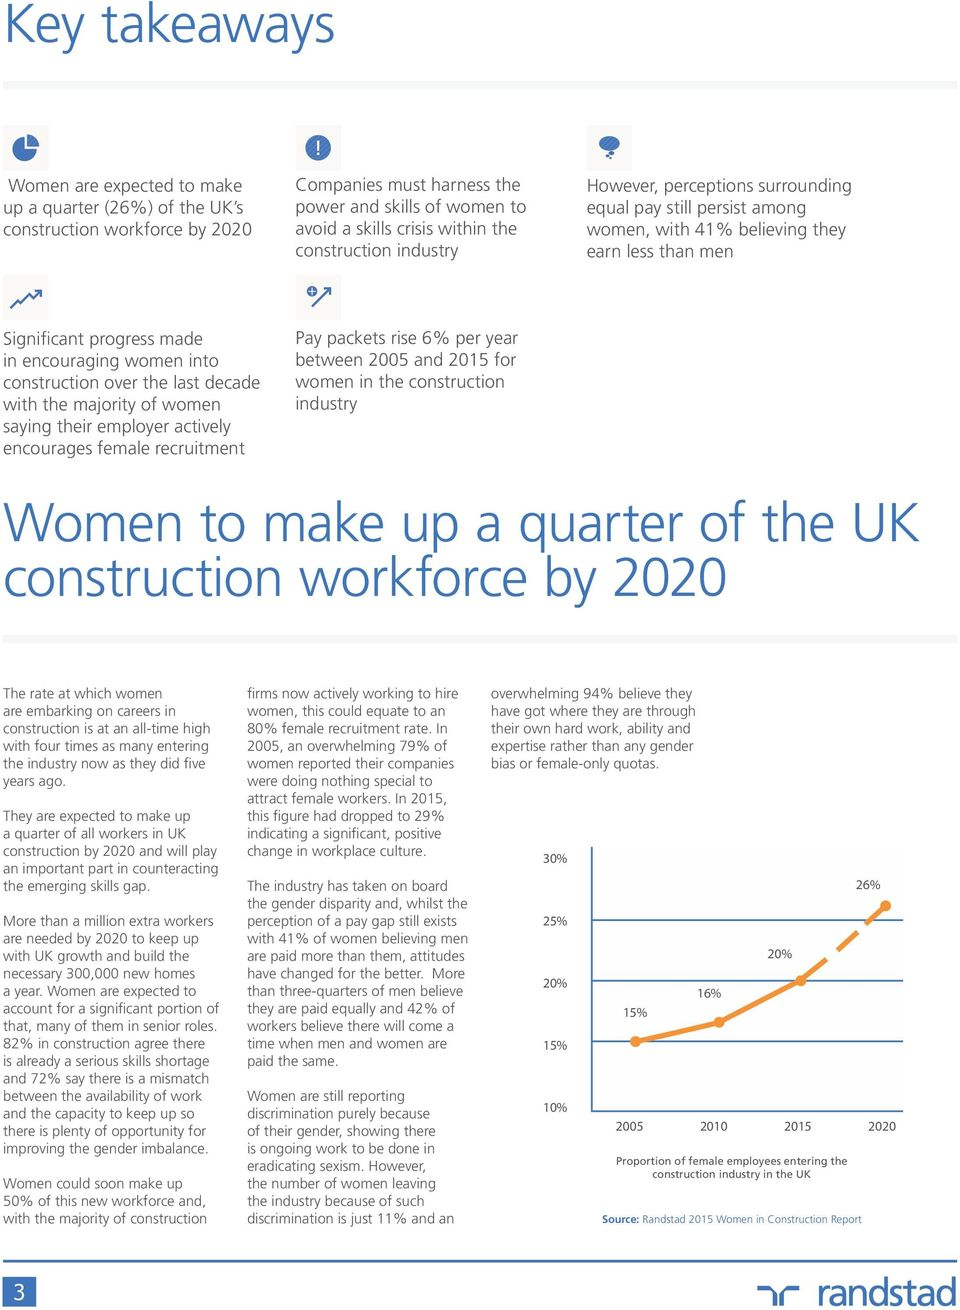 over the last decade with the majority of women saying their employer actively encourages female recruitment Pay packets rise 6% per year between 2005 and 2015 for women in the construction industry